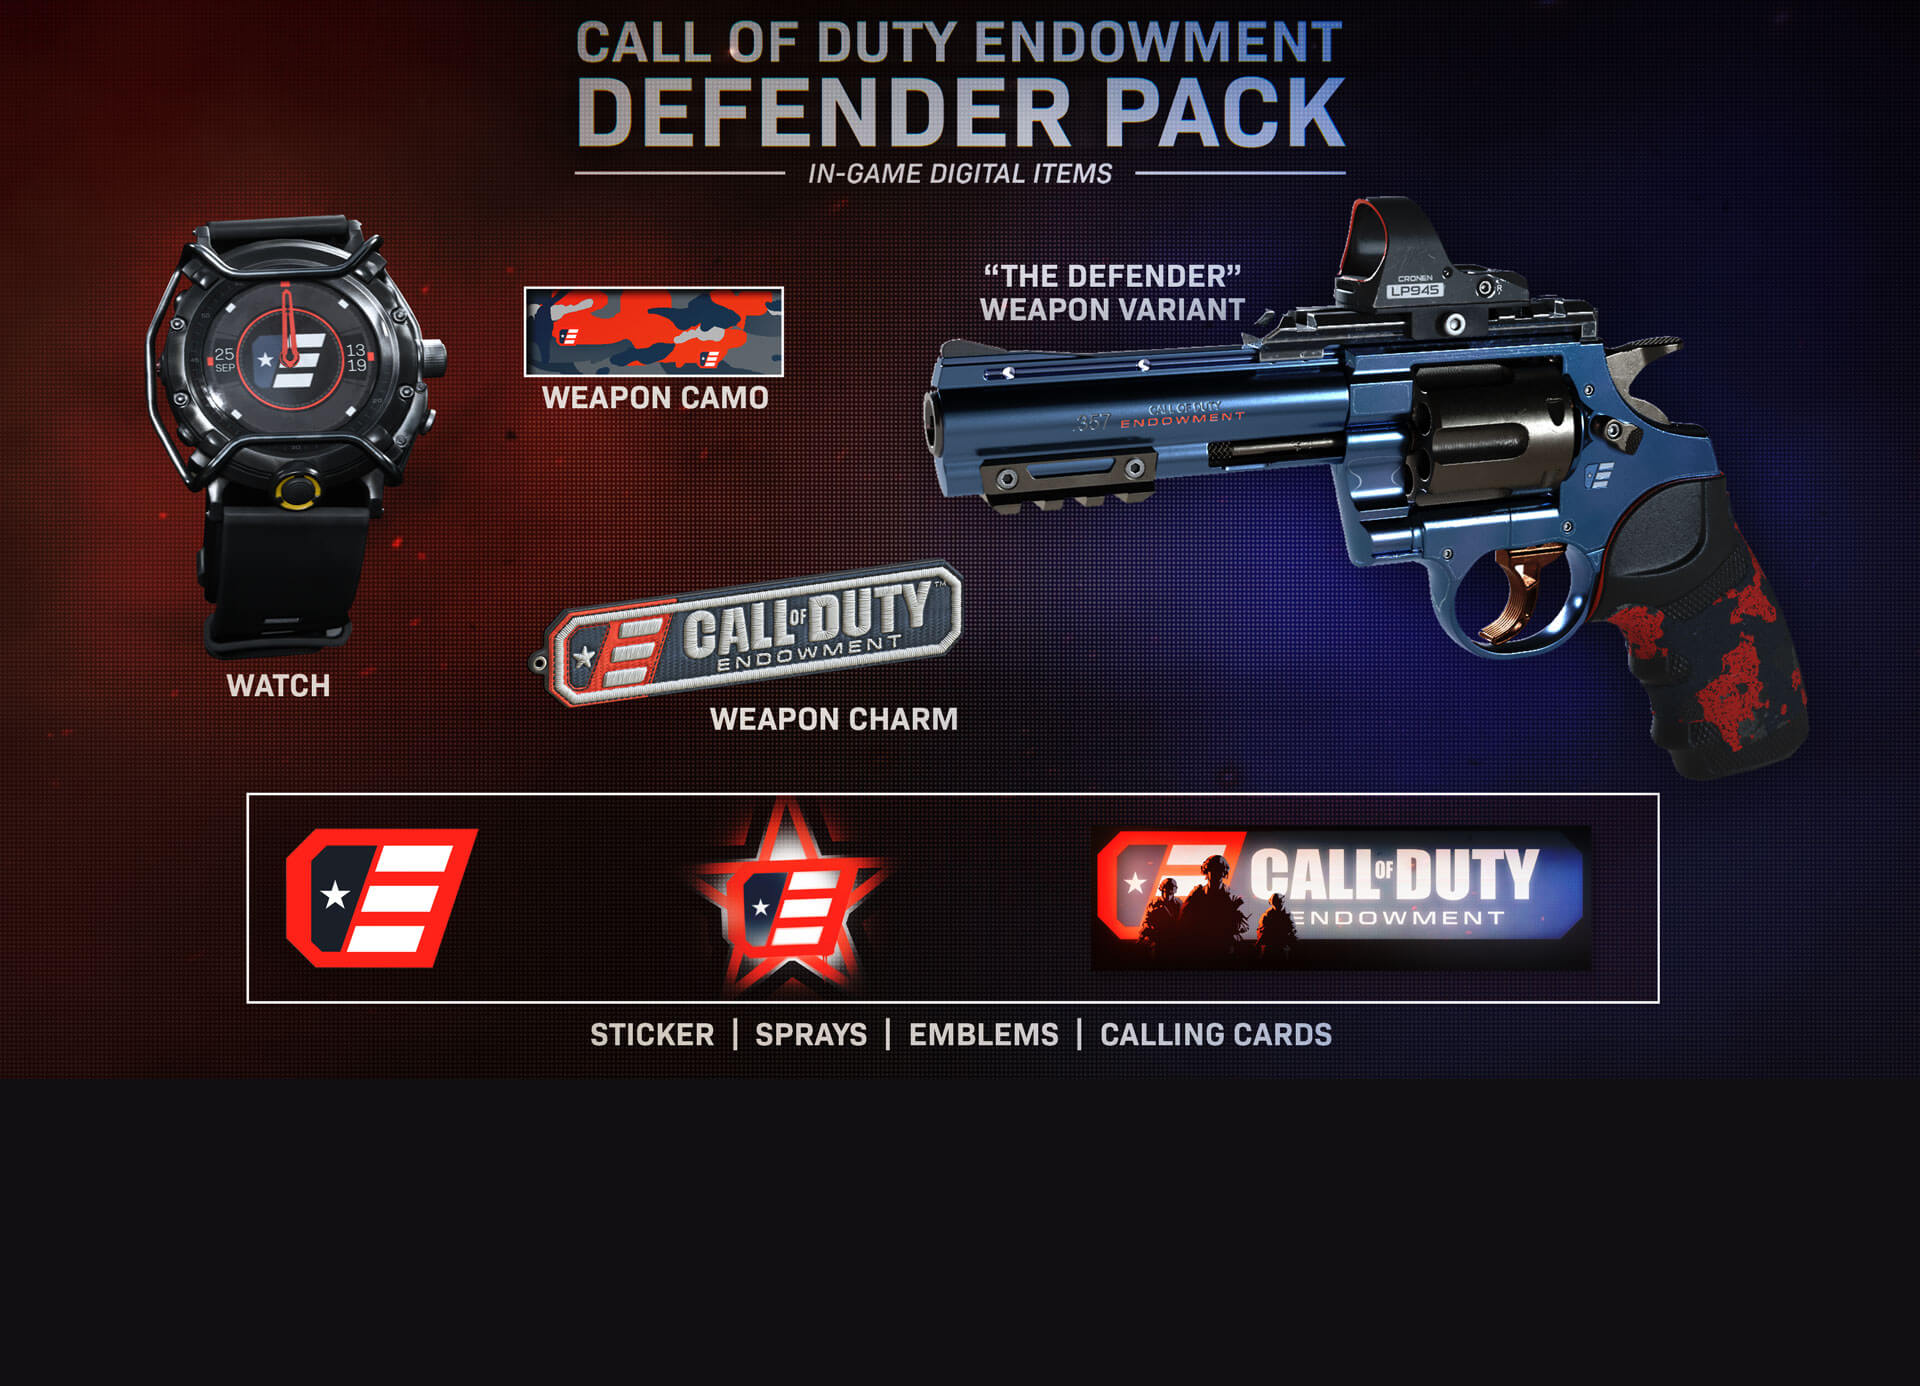 THE CALL OF DUTY ENDOWMENT DEFENDER PACK